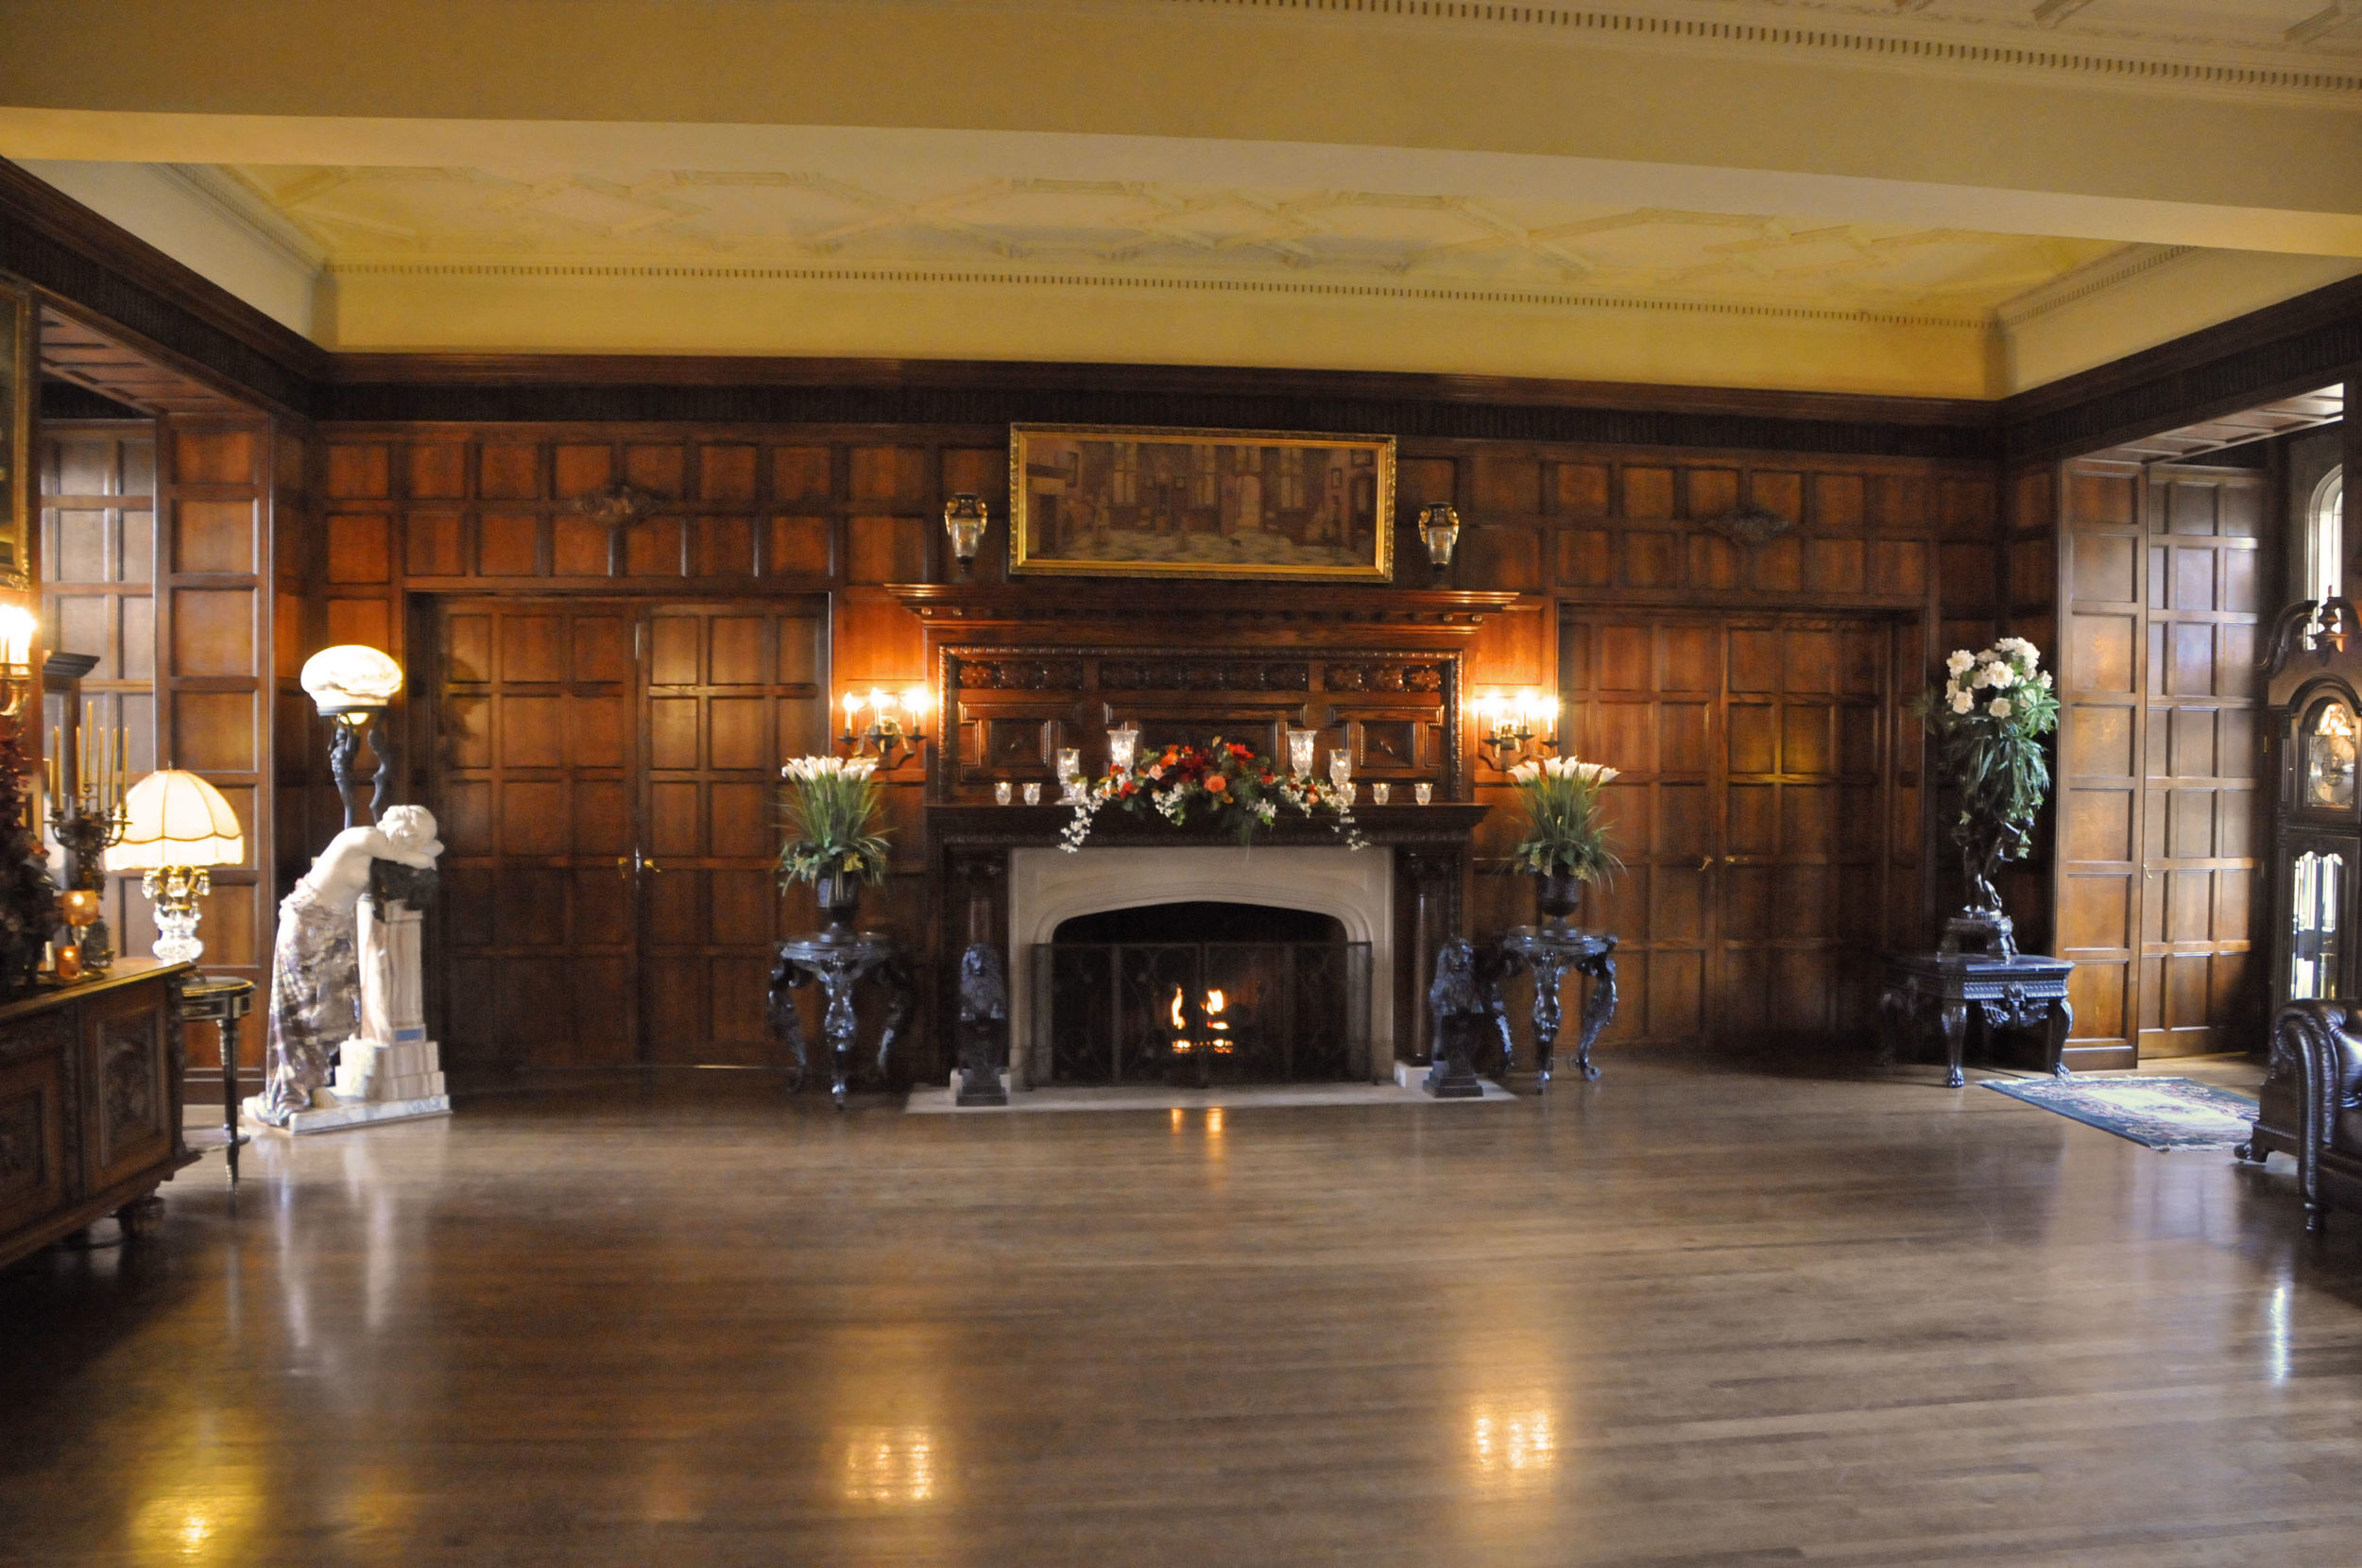 Castle Interior Photo Gallery  Thornewood Castle